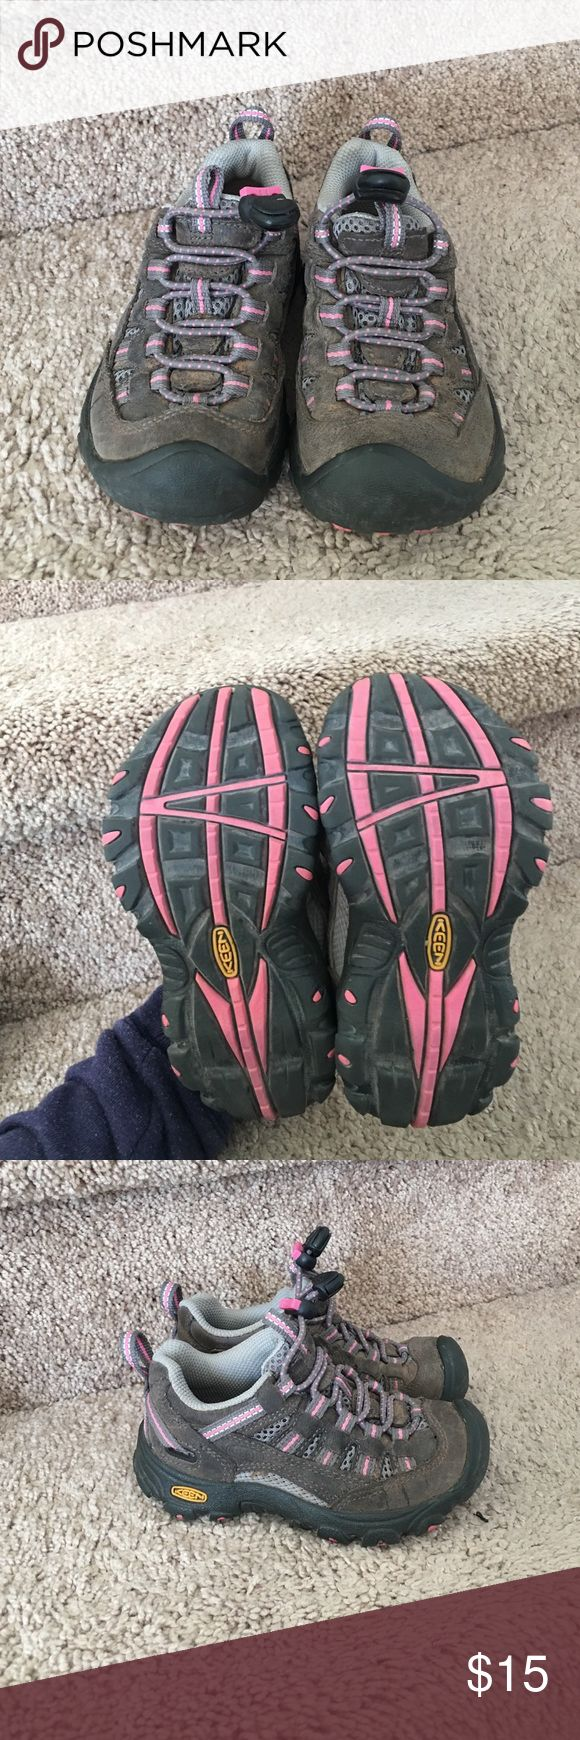 Toddler girl hiking boots in great condition!! Toddler girl Keen hiking boots in great condition!!! Keen Shoes Boots